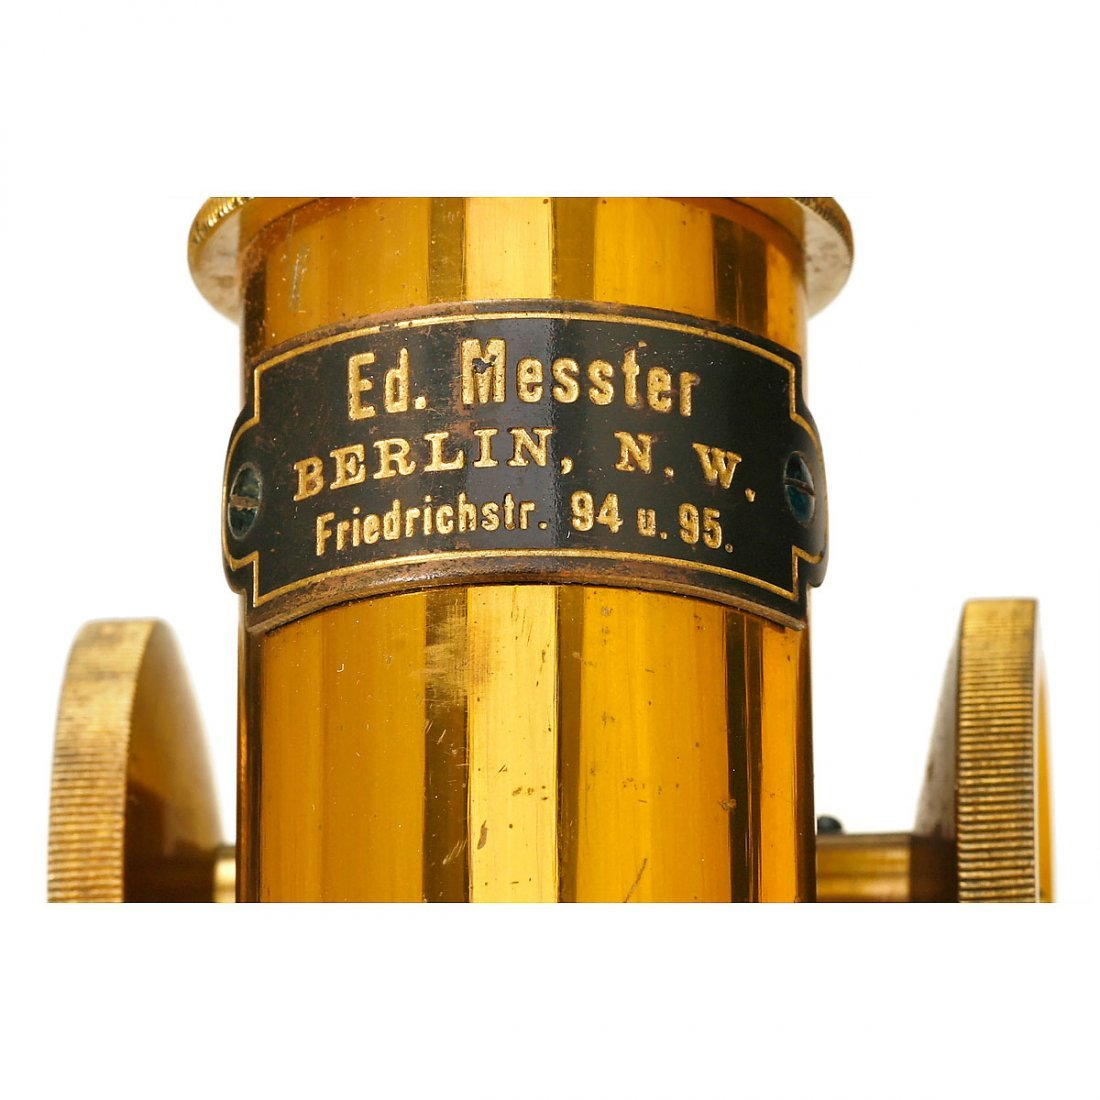 German Compound Microscope by Messter, 1899 - 2